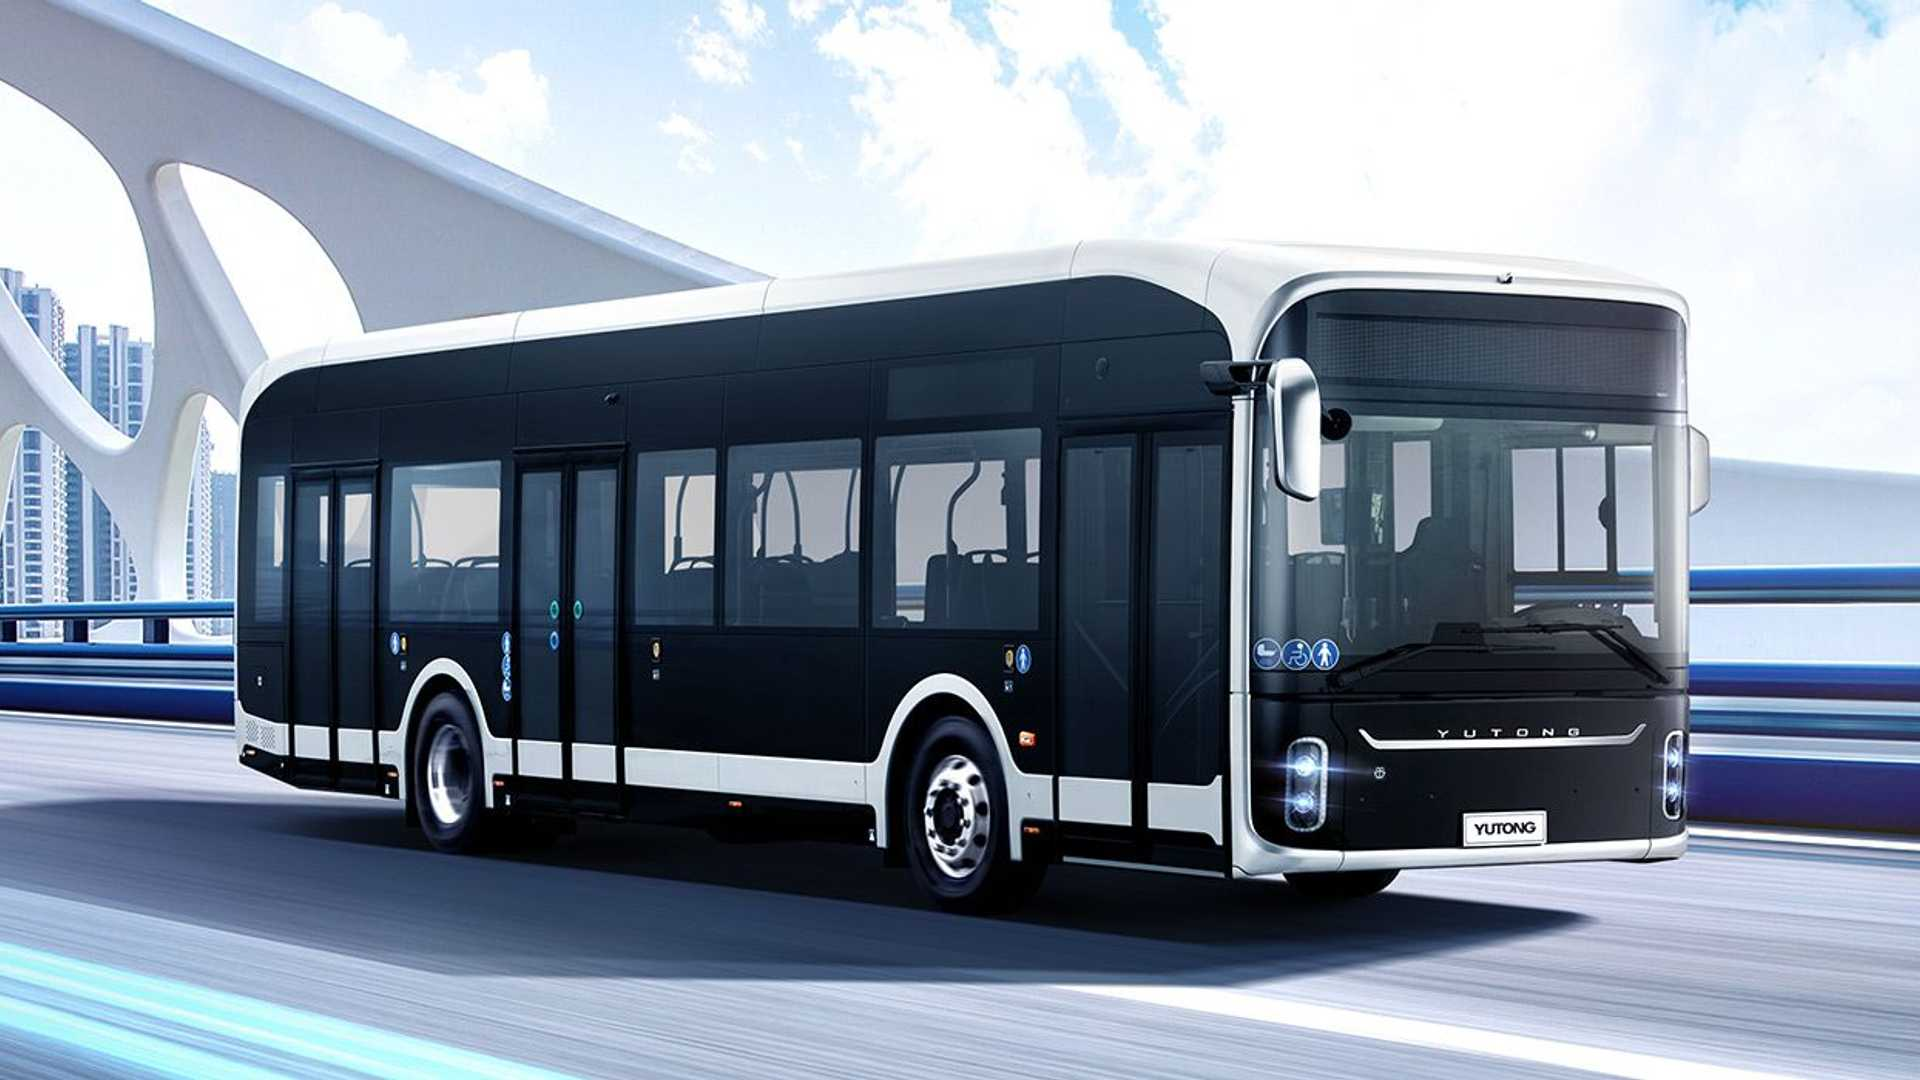 There Is One Company That Sells More EV Buses Than BYD: Yutong